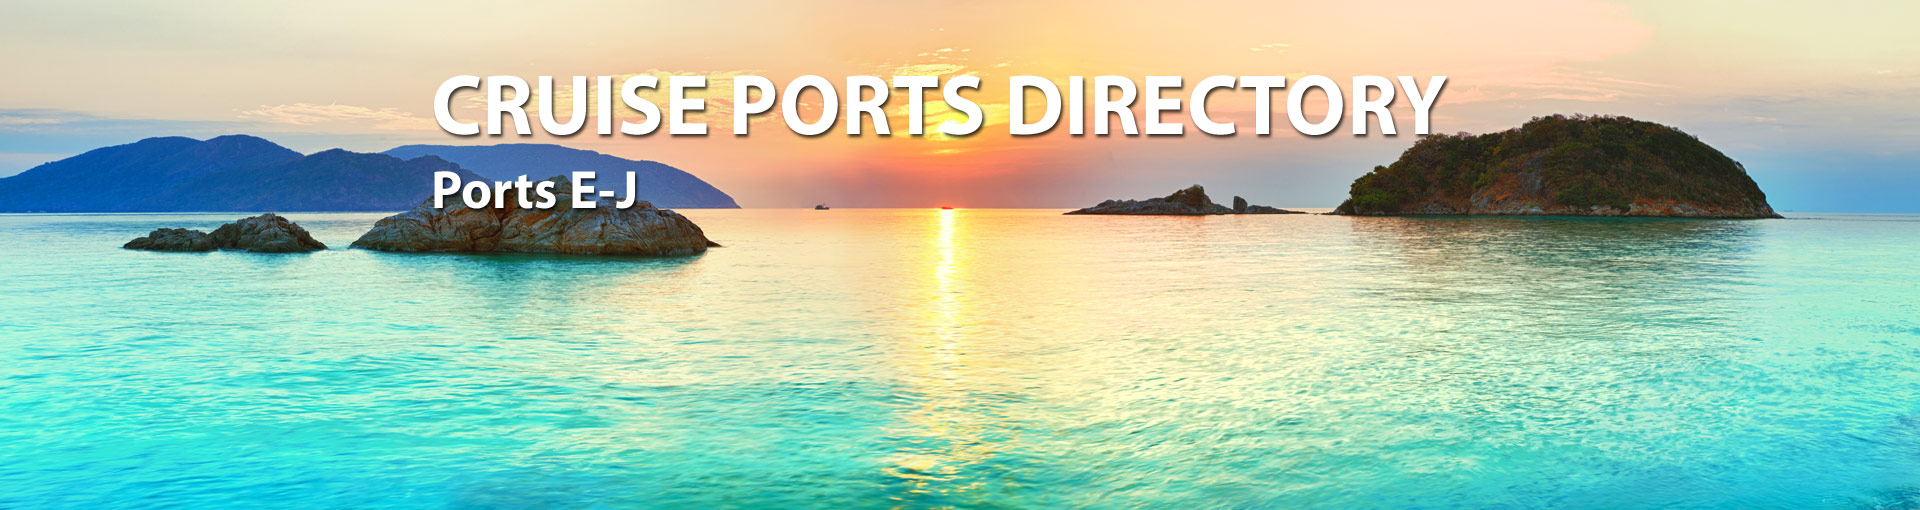 Cruise Ports Directory, Page 2